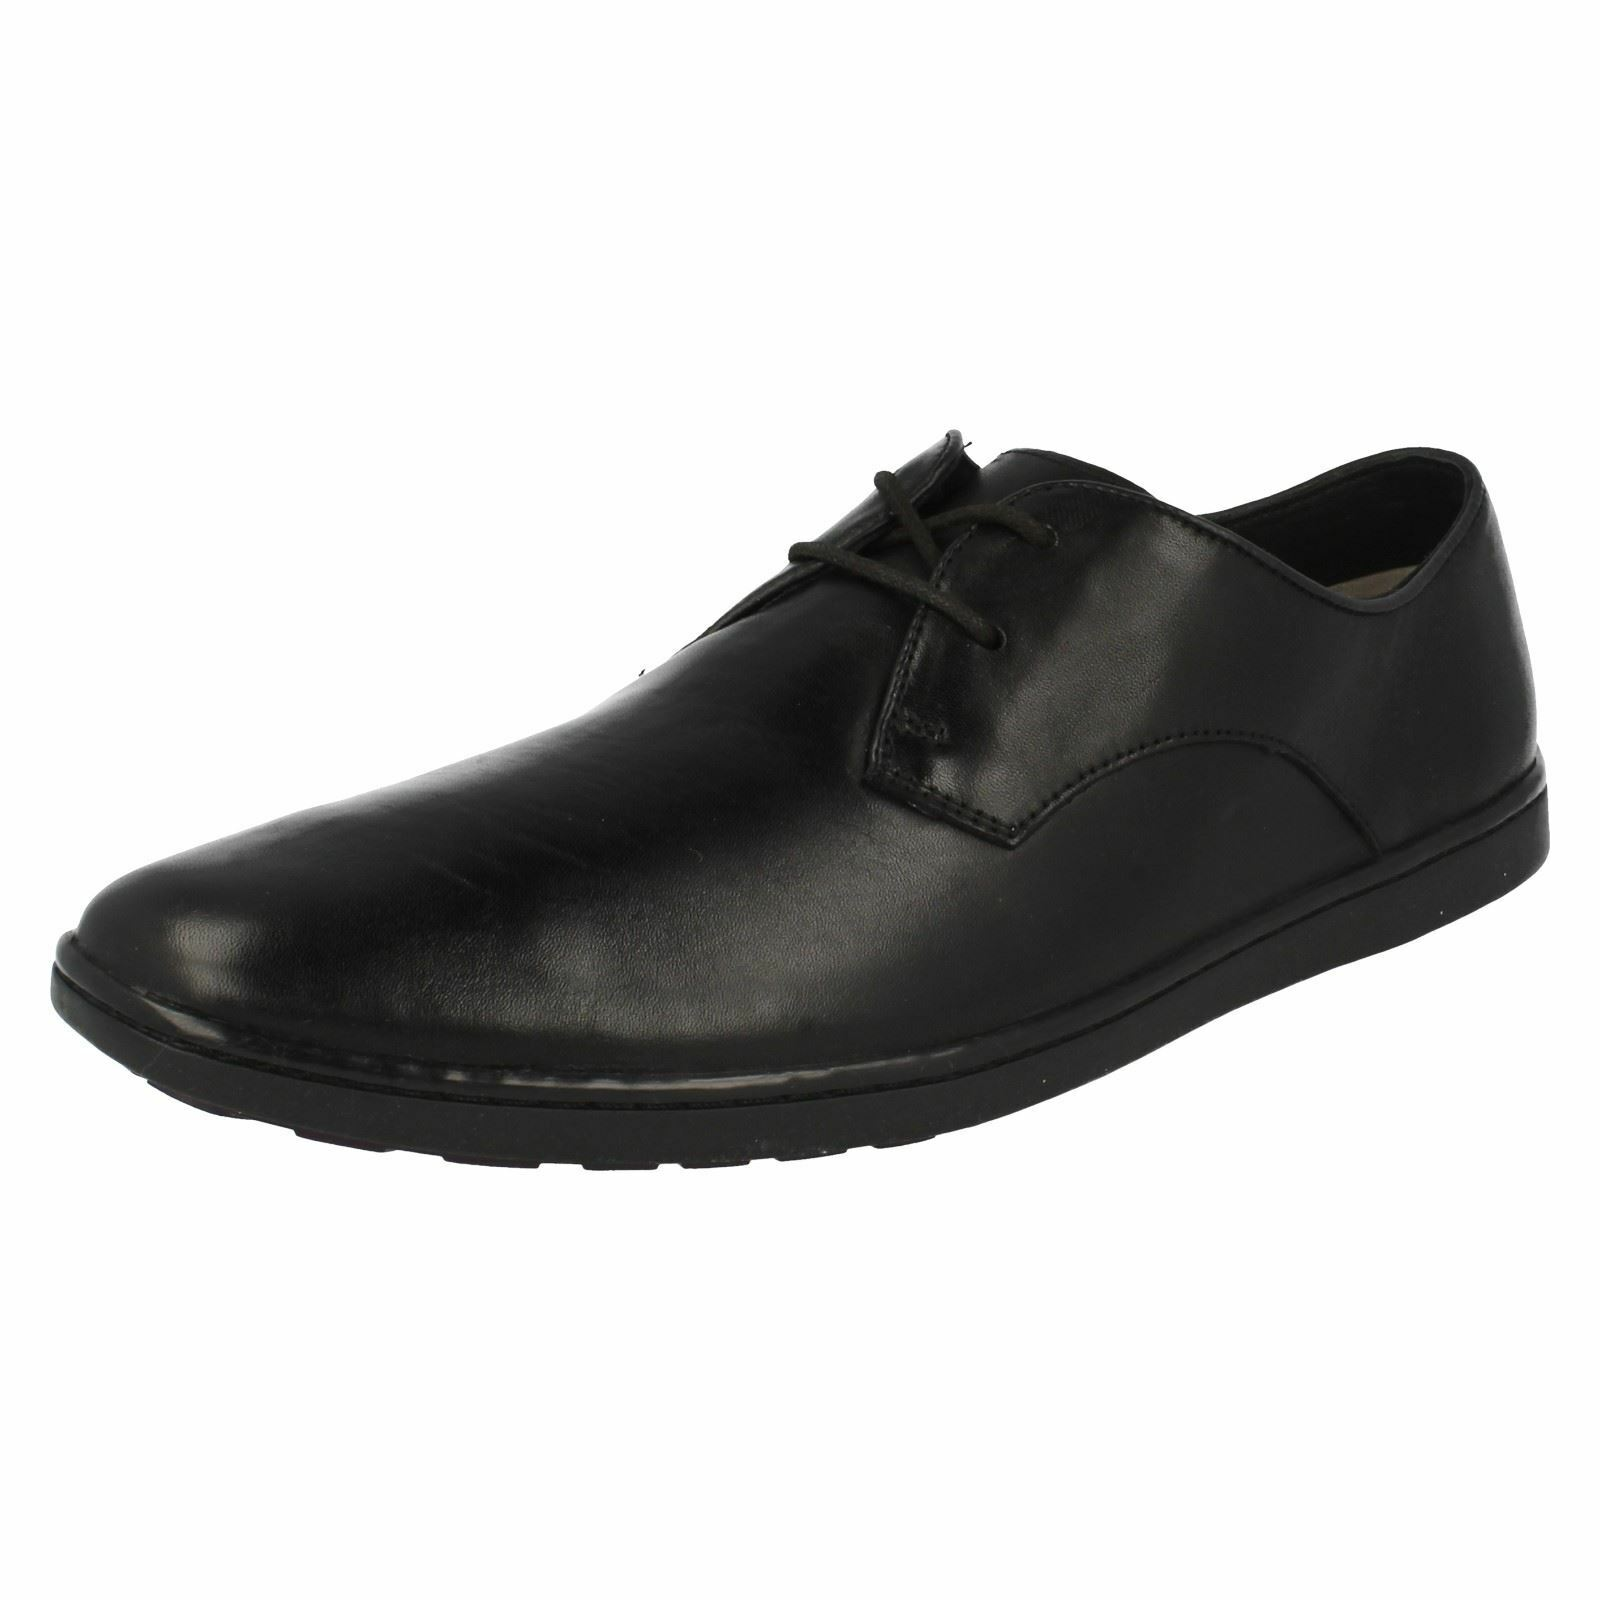 Mens Clarks Formal shoes 'Orwin Lace'